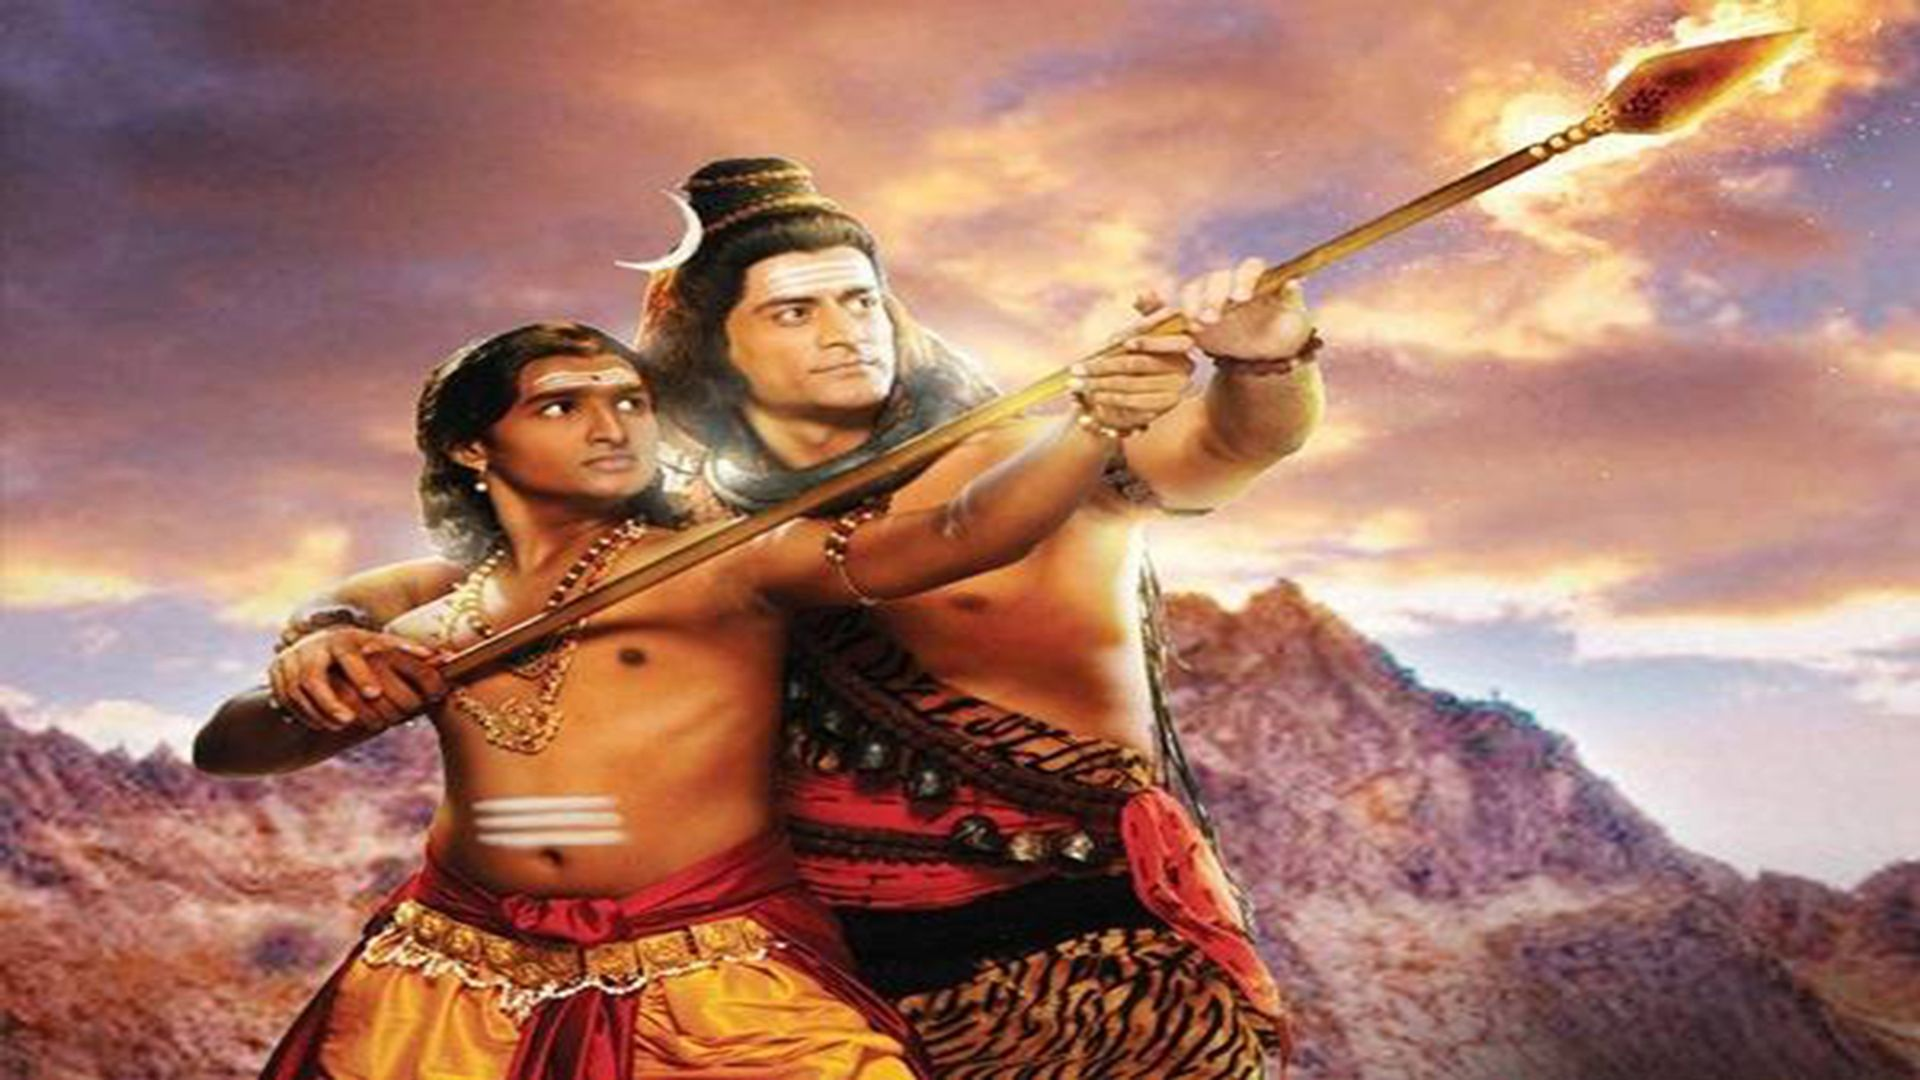 Season 18, Episode 19 Janaka Pays His Gratitude To Mahadev For His Guidance